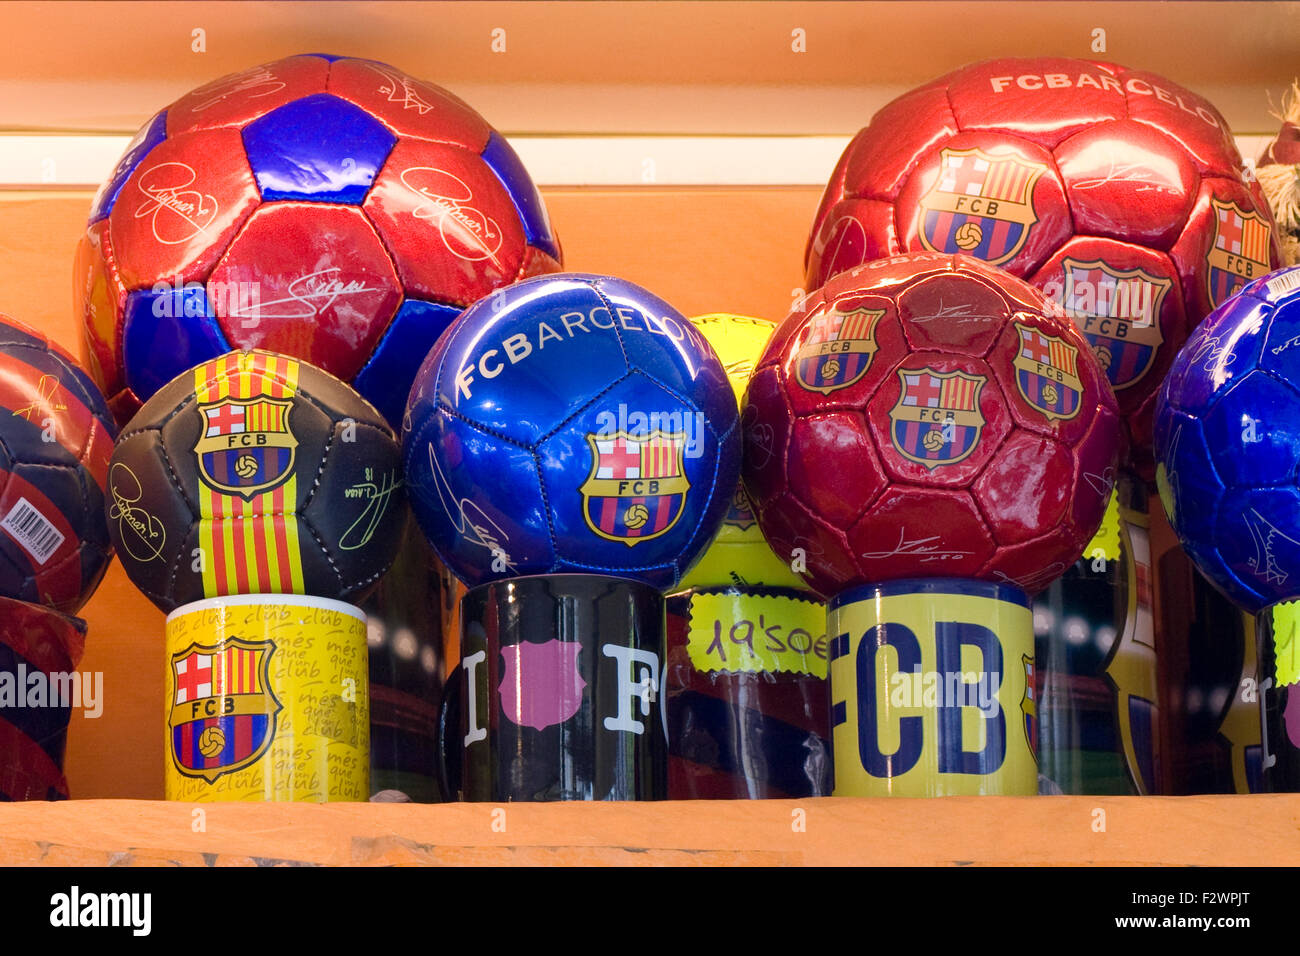 Novelty Stalls displaying Traditional novelty Items in Barcelona - Stock Image